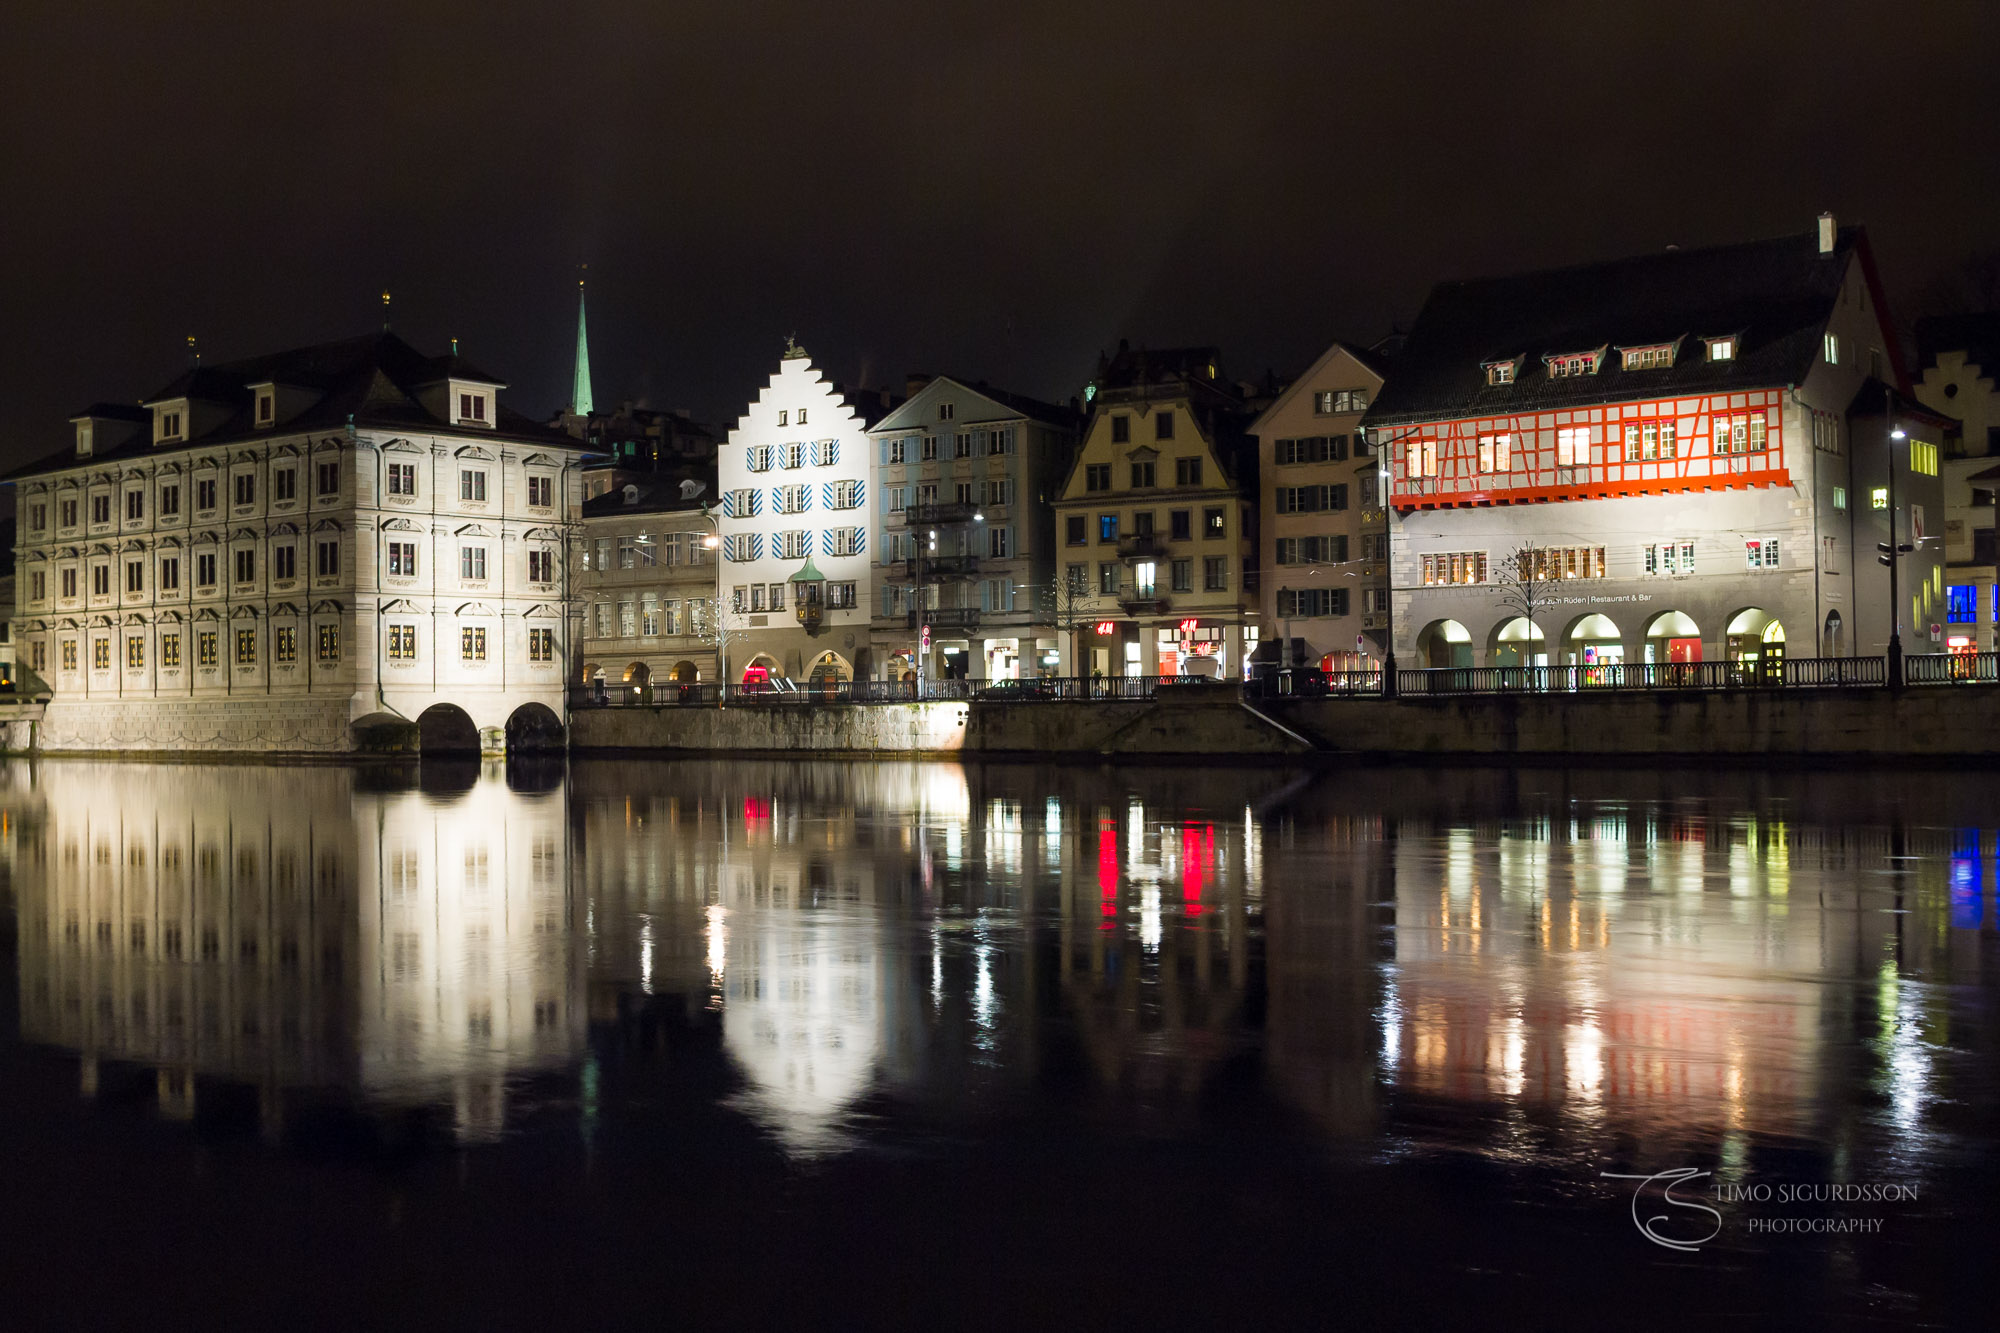 Limmat riverside, Zurich, Switzerland. Reflections at night.